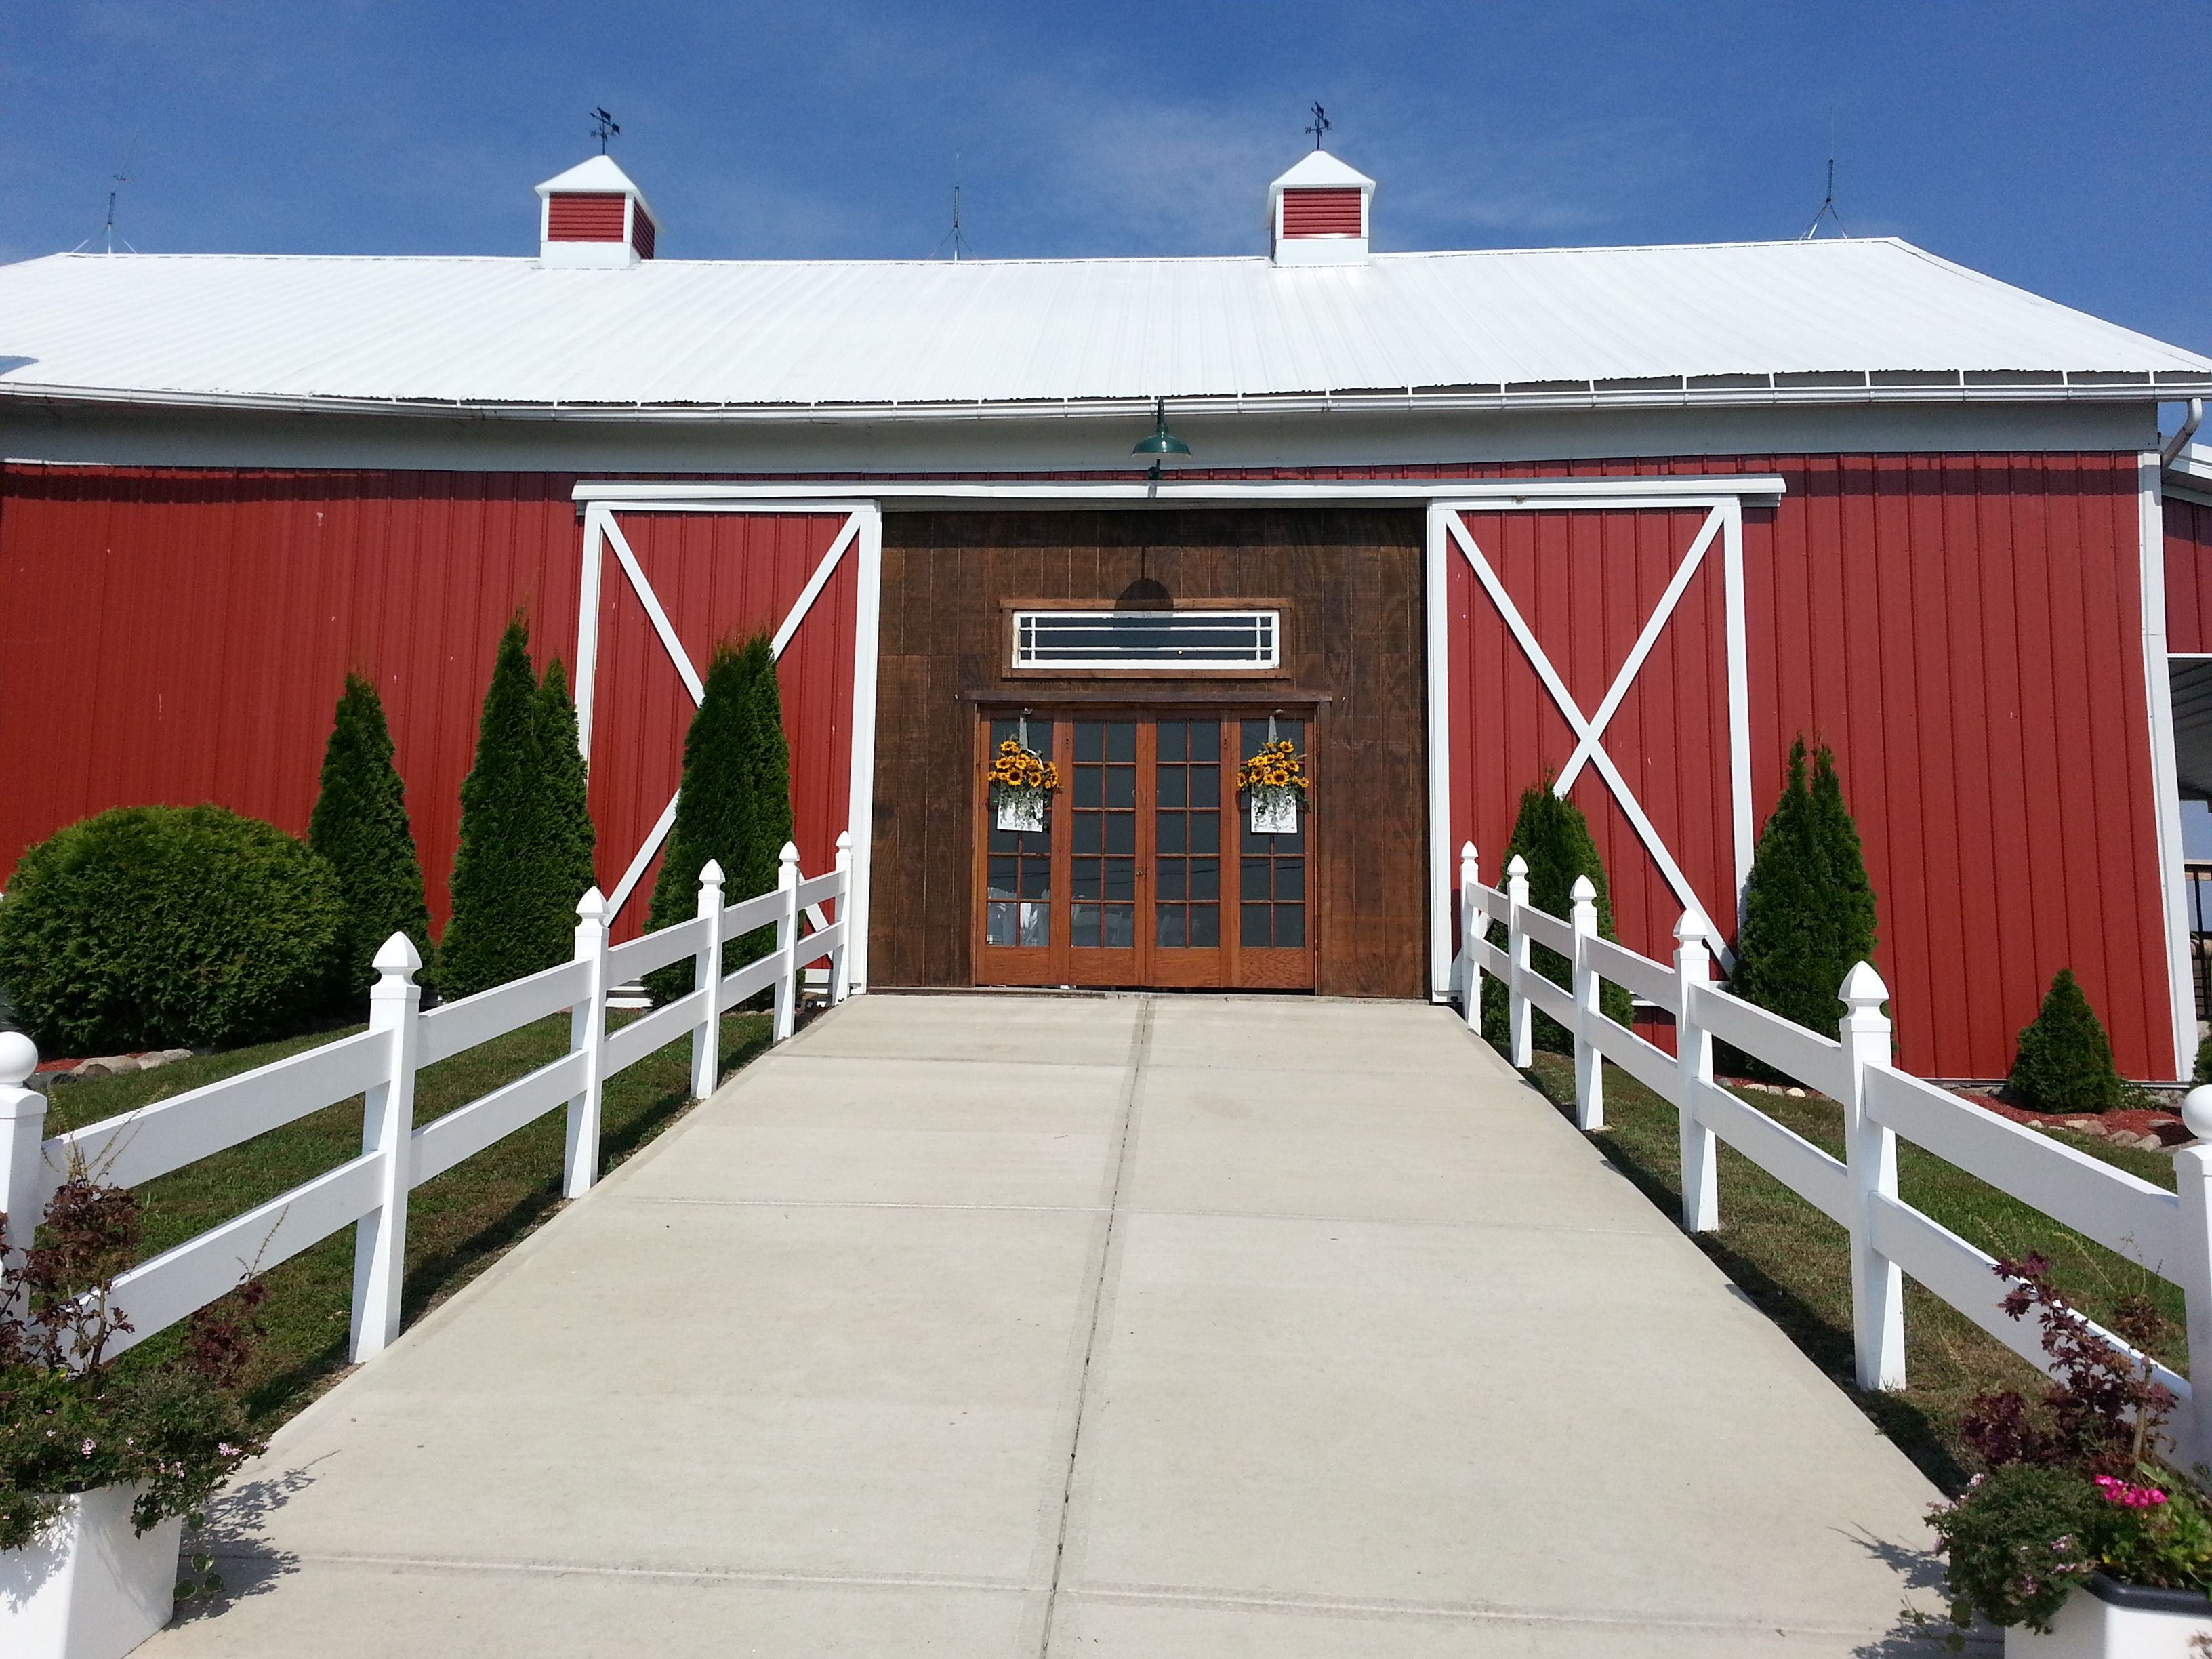 Barn venue for weddings and events northern indiana